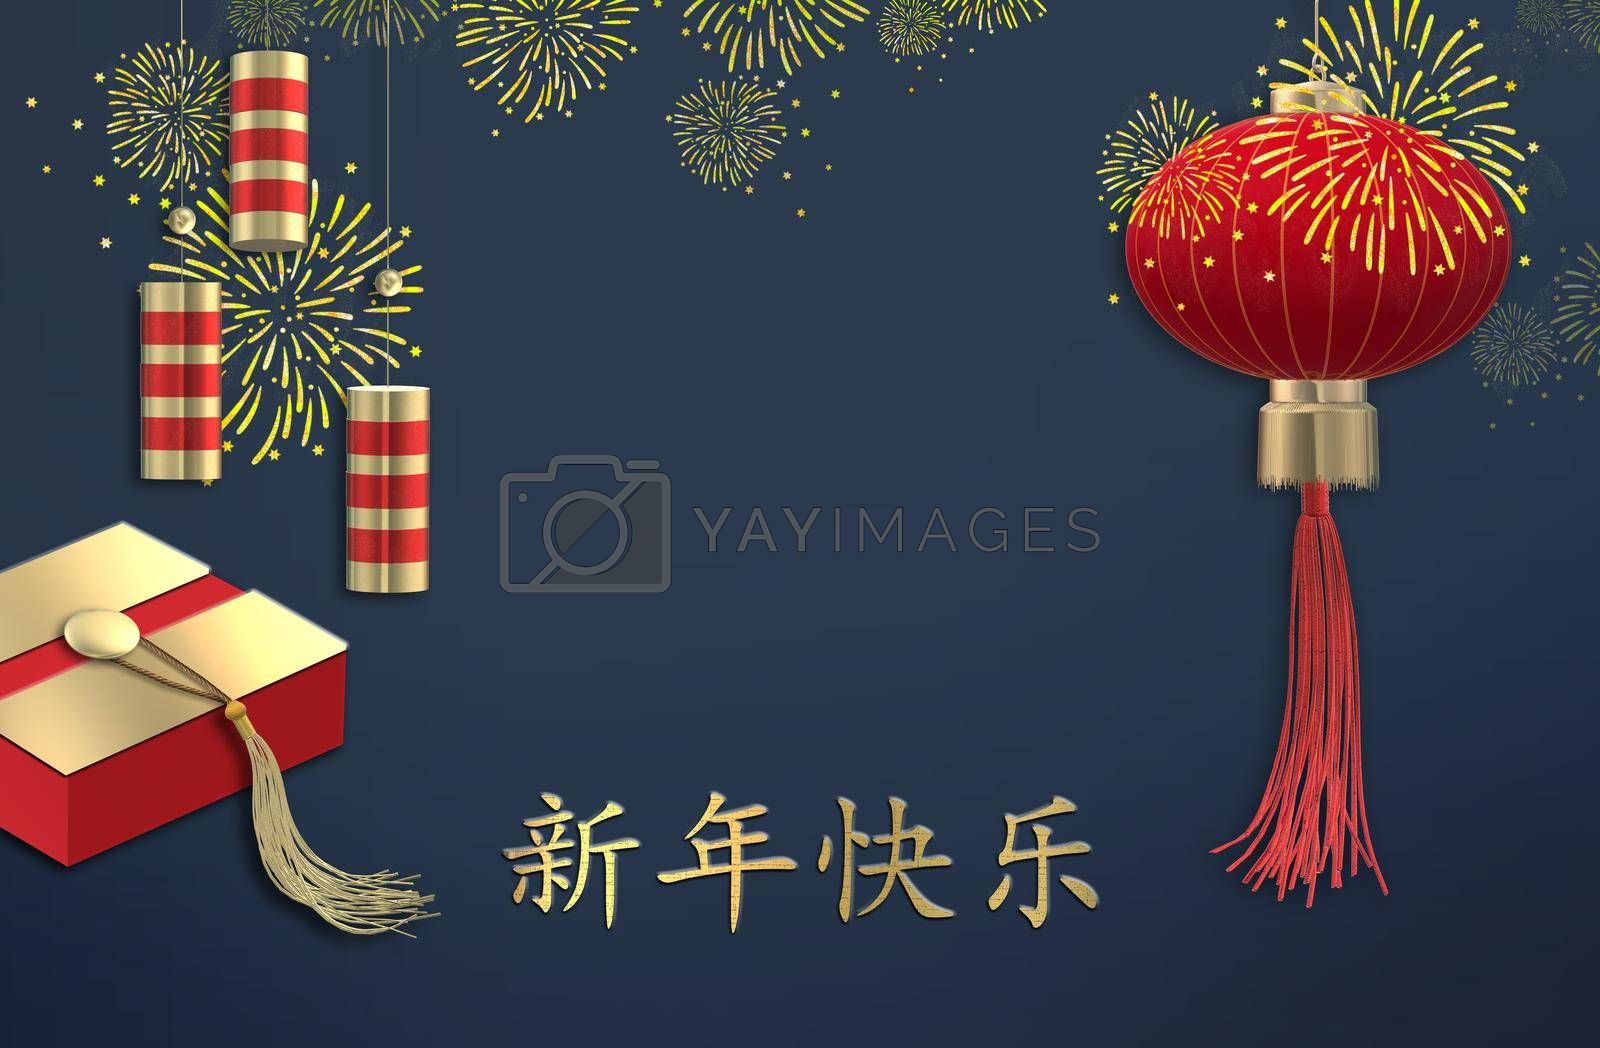 Chinese New Year banner. Asian clouds and patterns, asian shapes, red gold lanterns, gift box, crackers. Translation Happy Chinese new year. 3D illustration